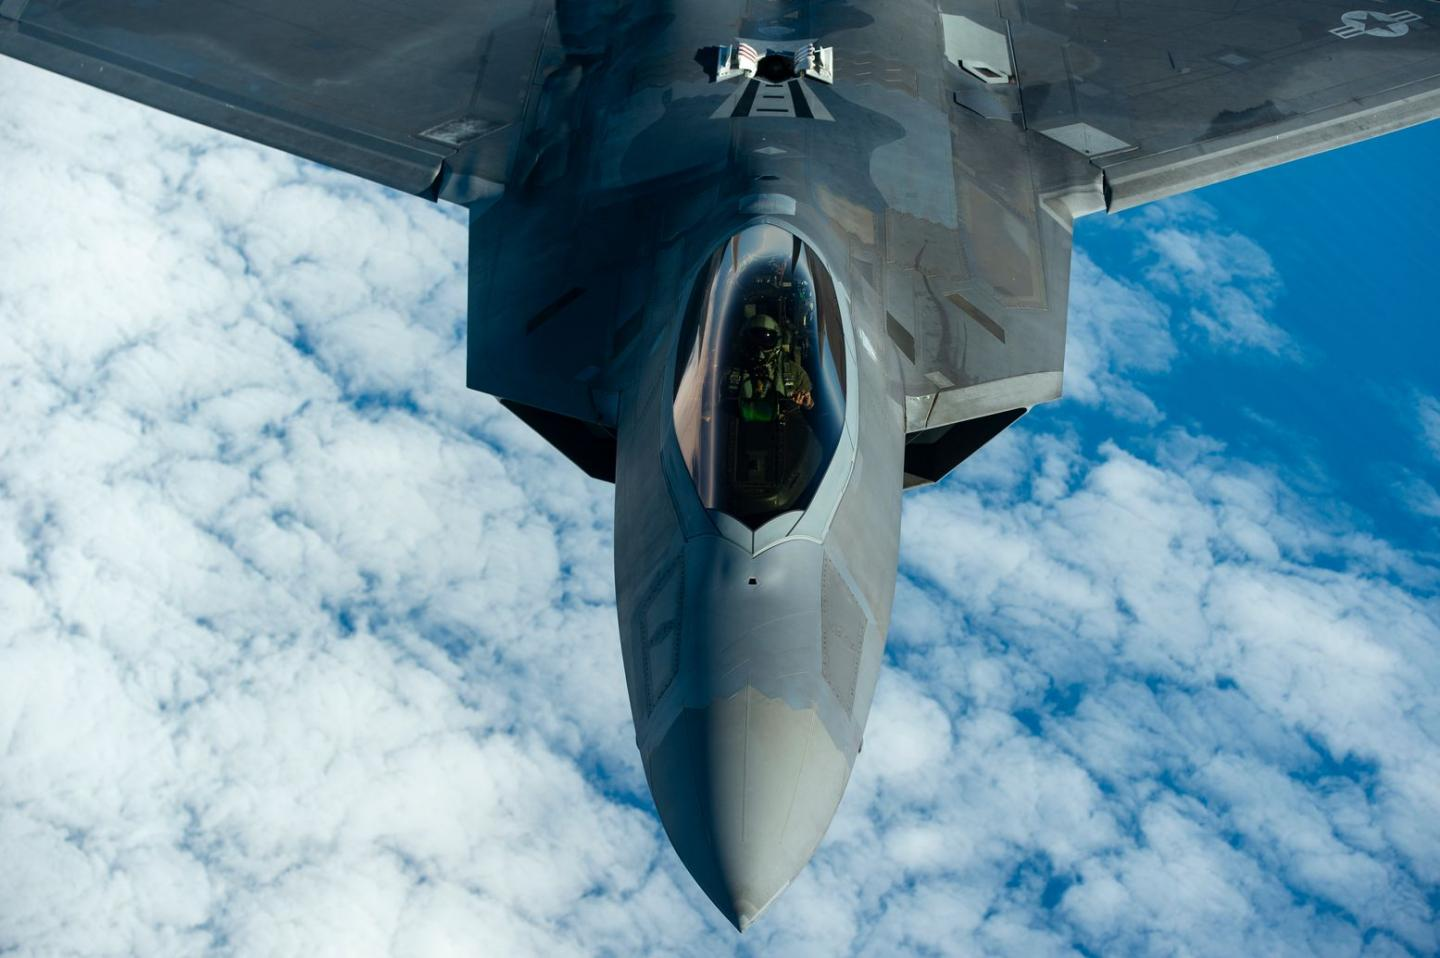 F-15s and F-22s Achieve An Amazing 41-1 Kill Ratio During Mock Combat